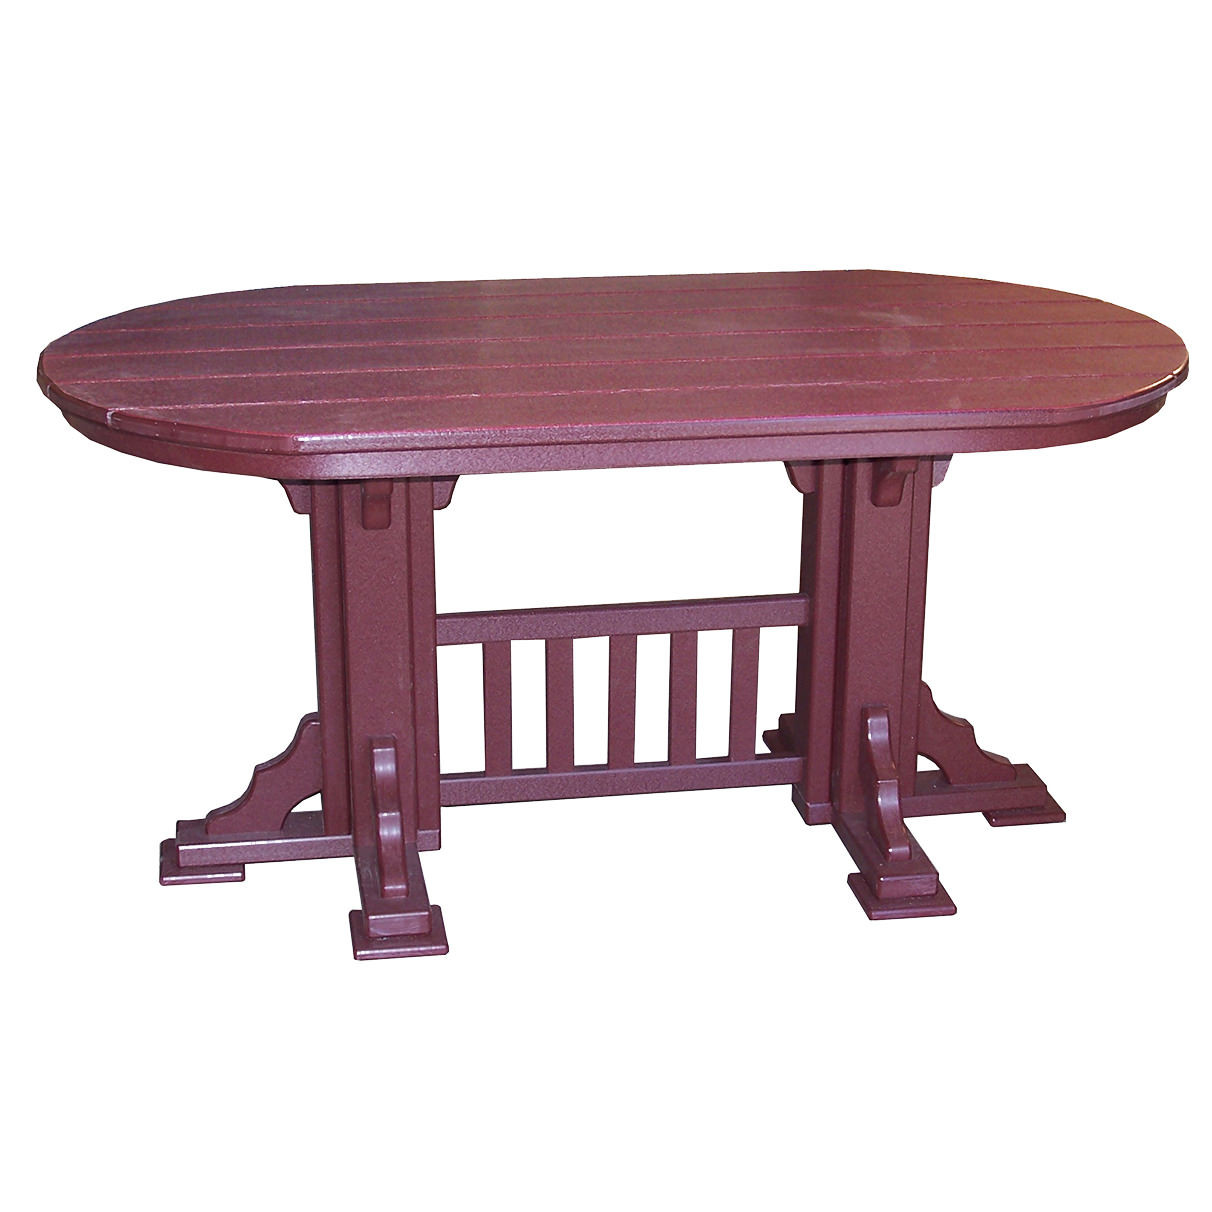 Amish poly 5 oval mission dining table country creek poly amish poly 5 oval mission dining table workwithnaturefo